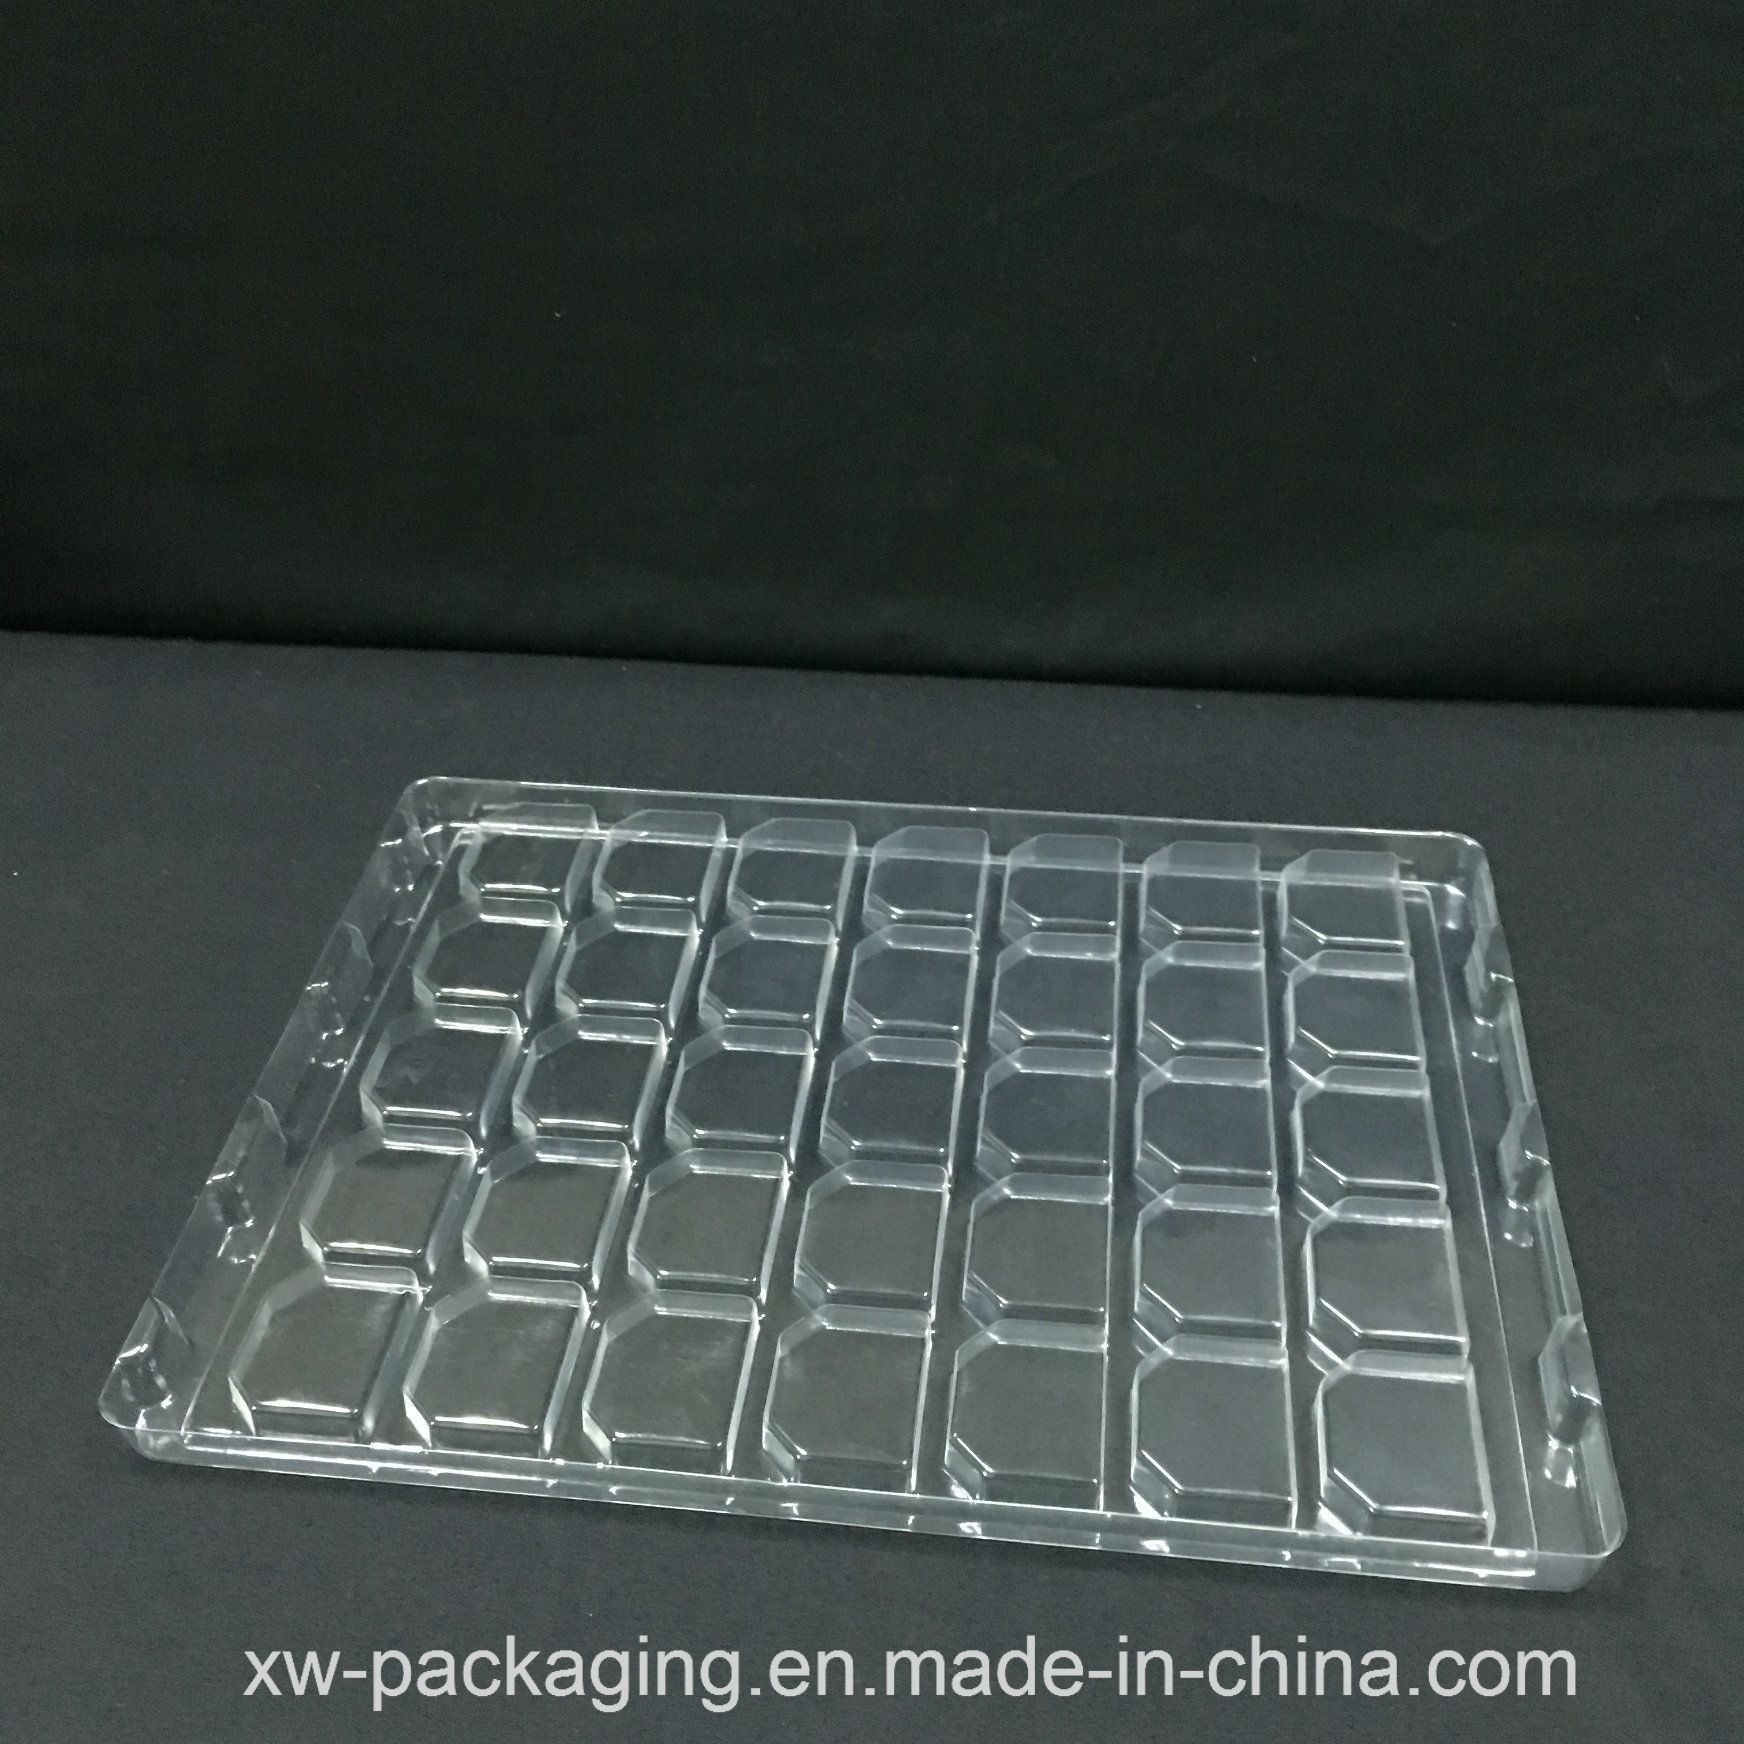 Custom Transparent Blister Tray for Electronic Product